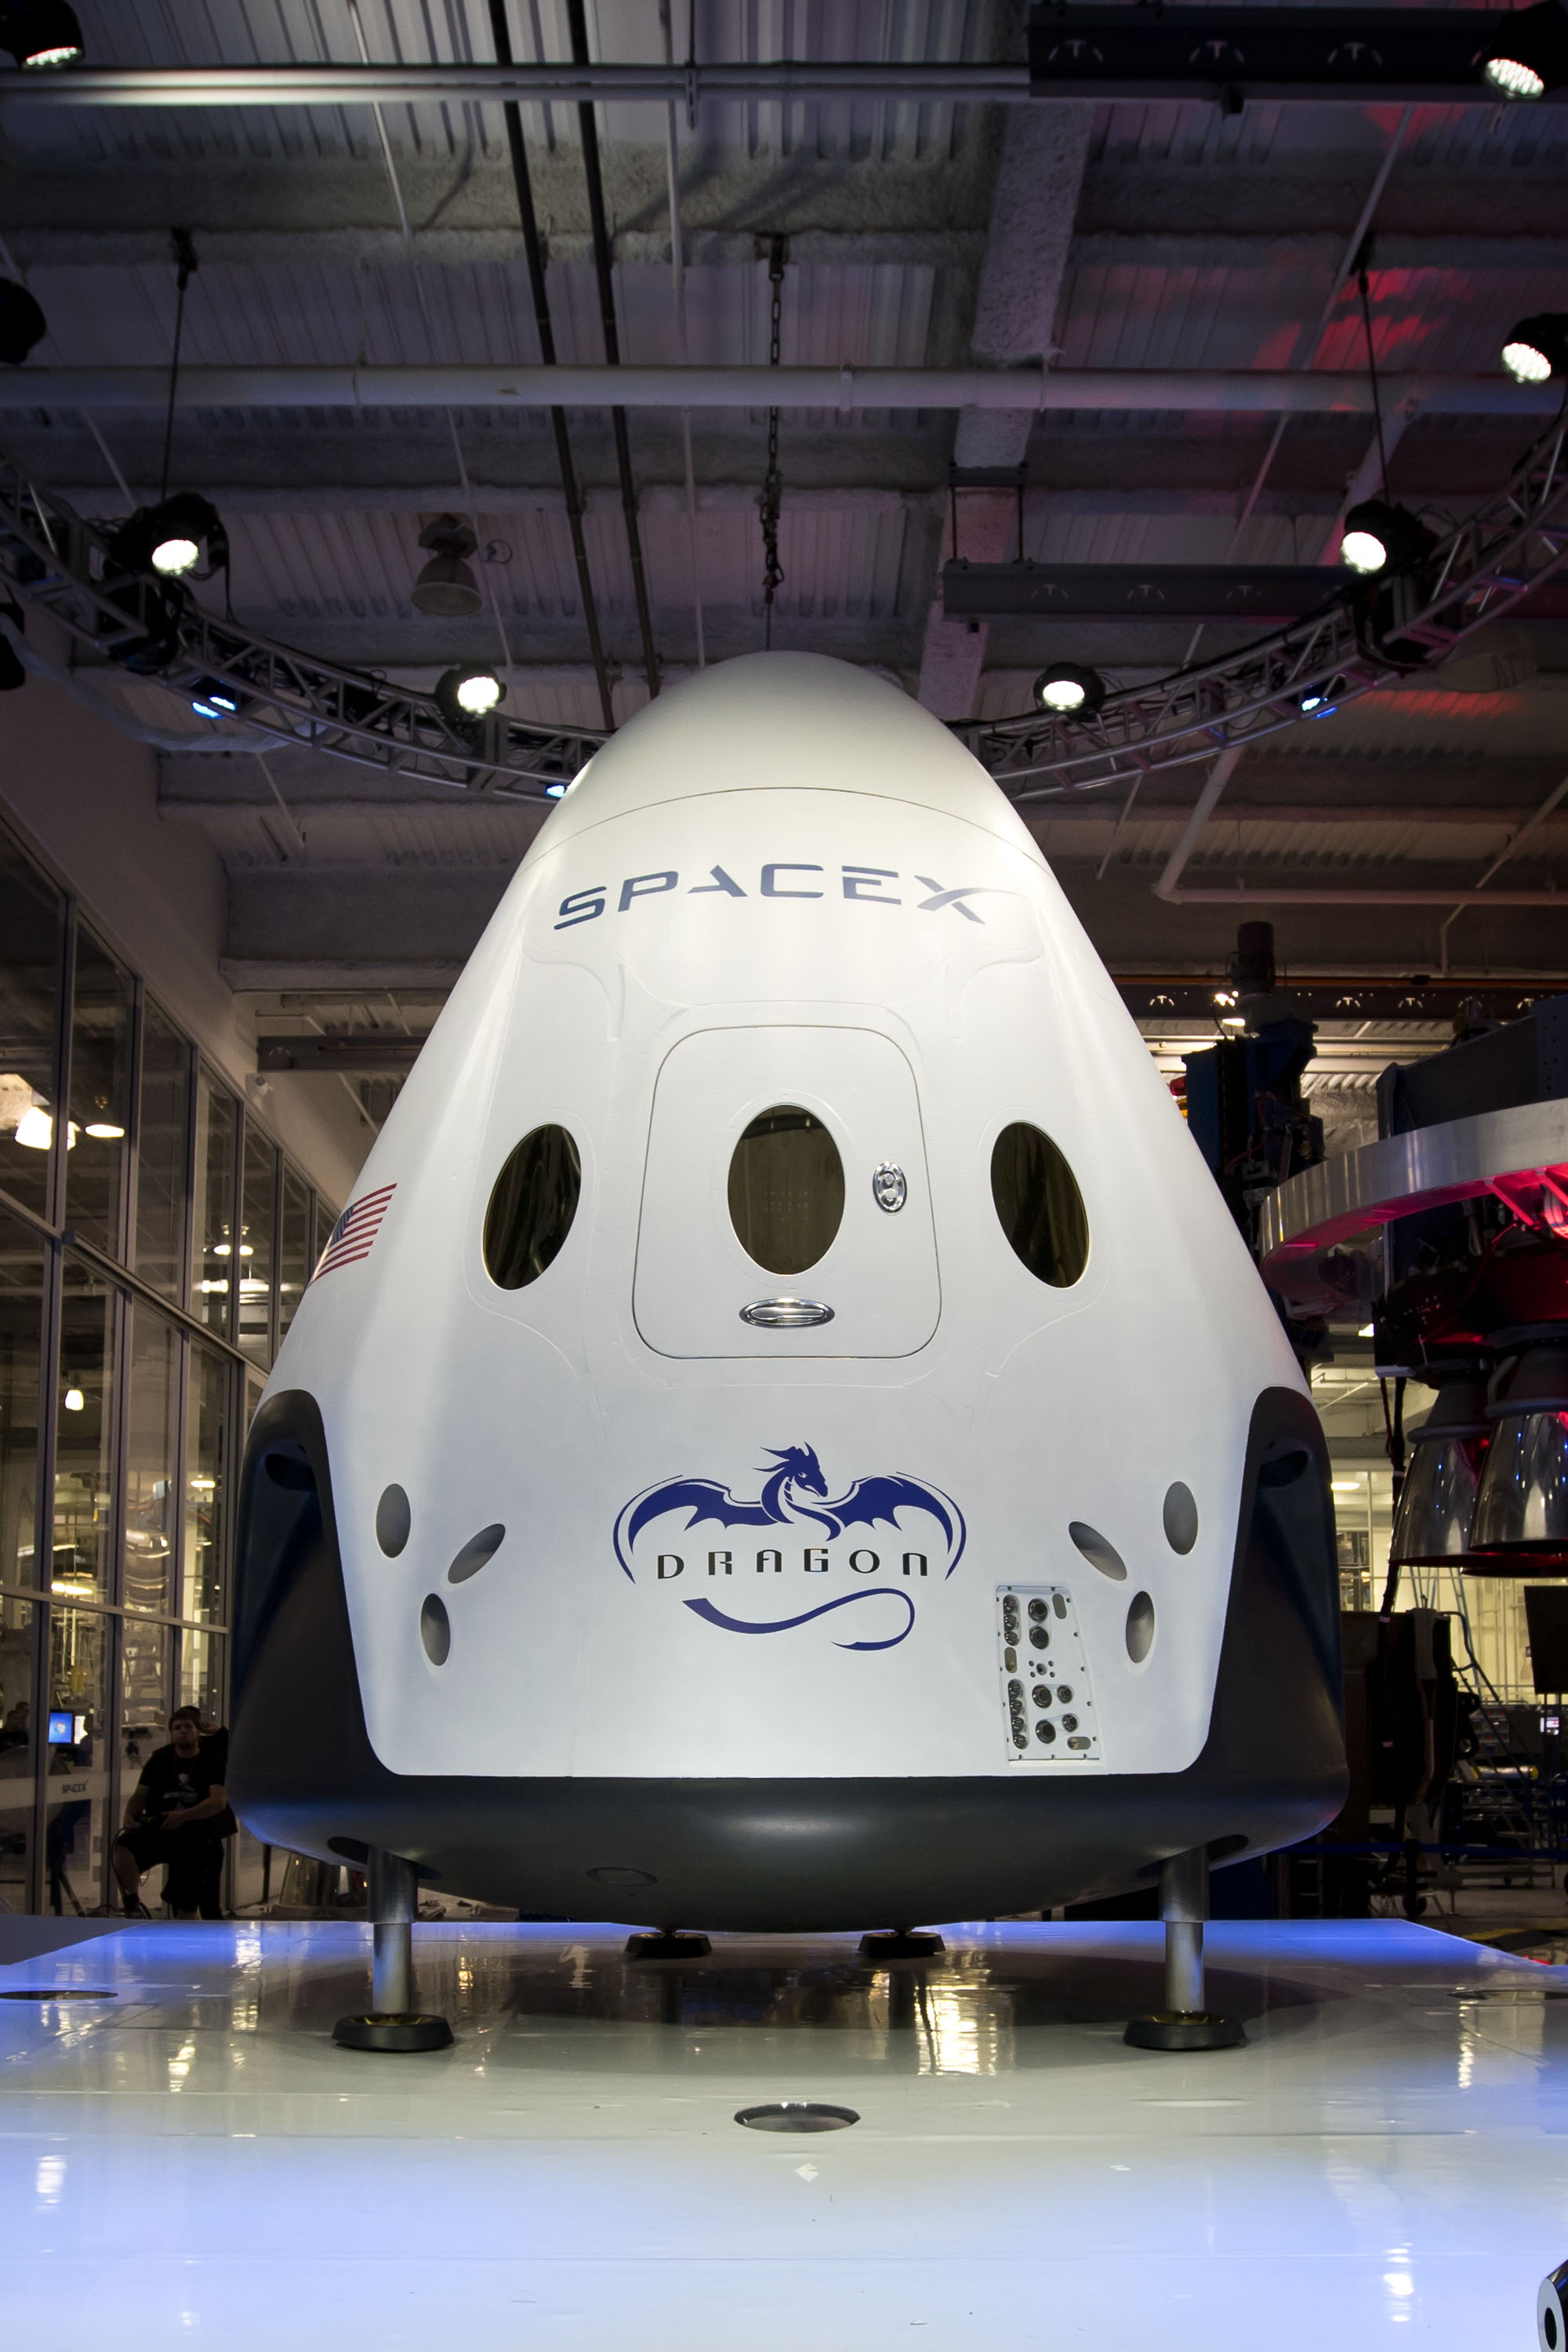 SpaceX's Manned Dragon